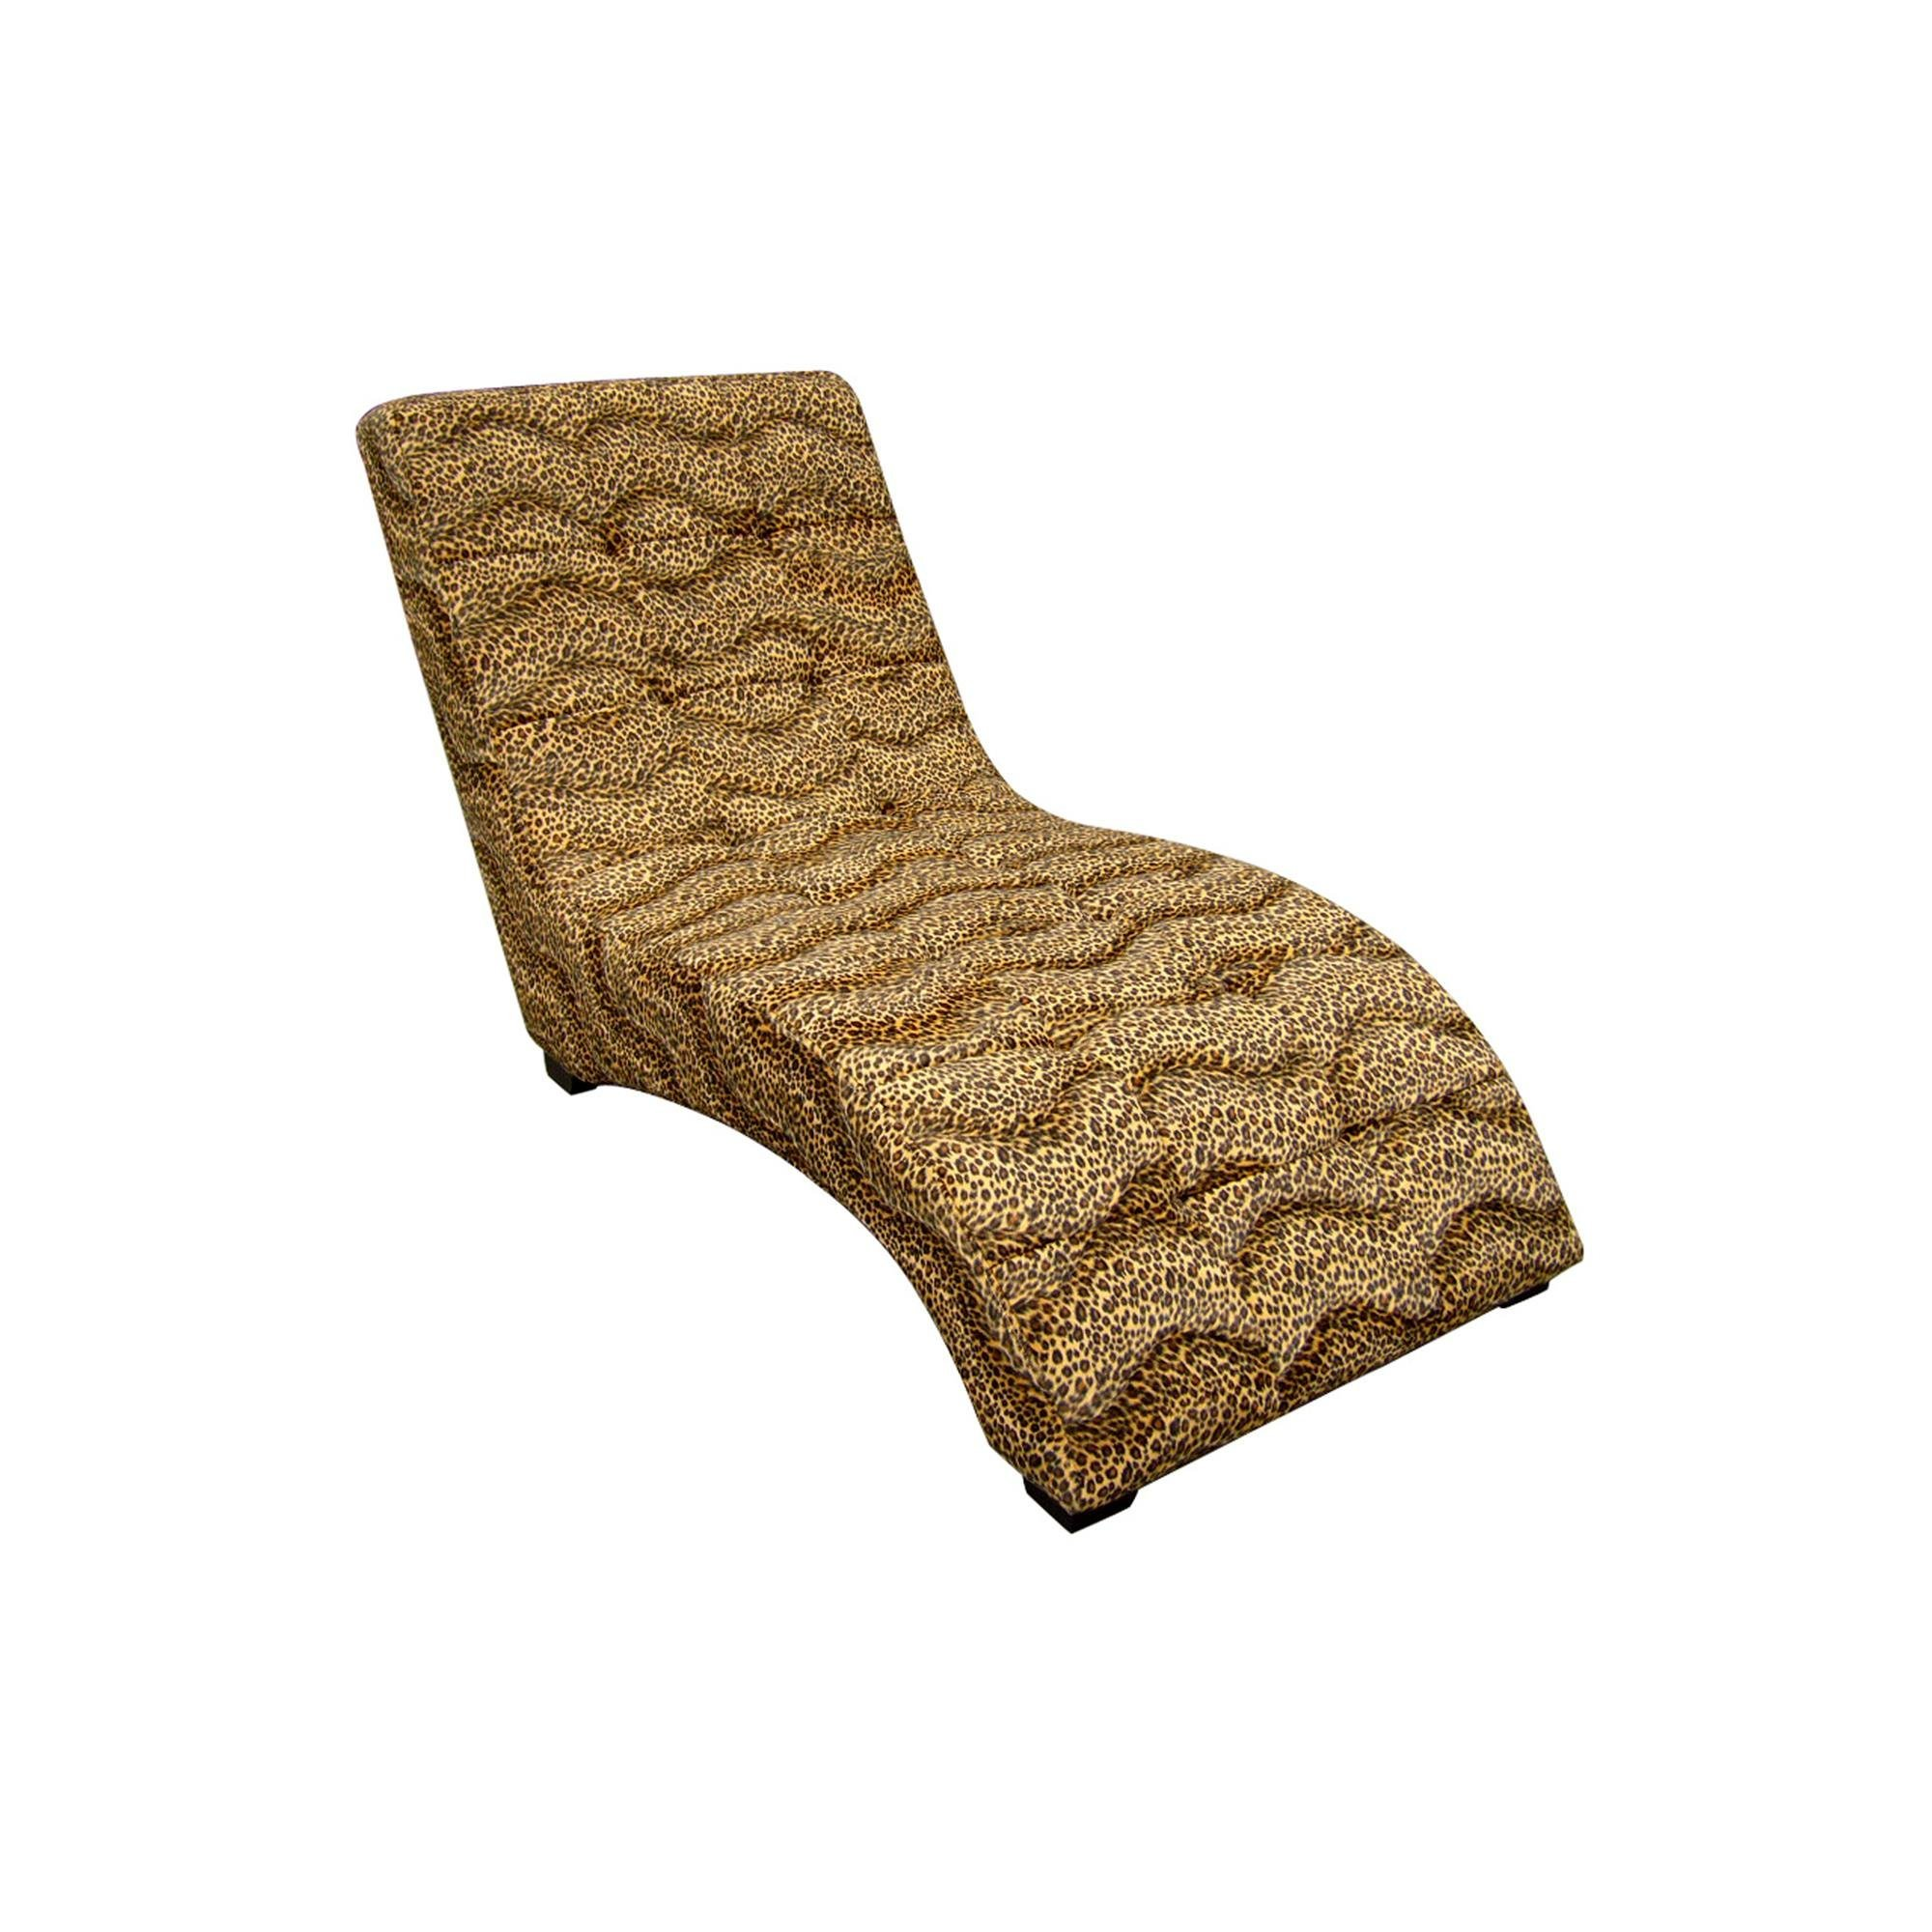 ORE 52'' Long Wooden Modern Chaise Lounge Chair, Leopard Print Faux Suede by ORE